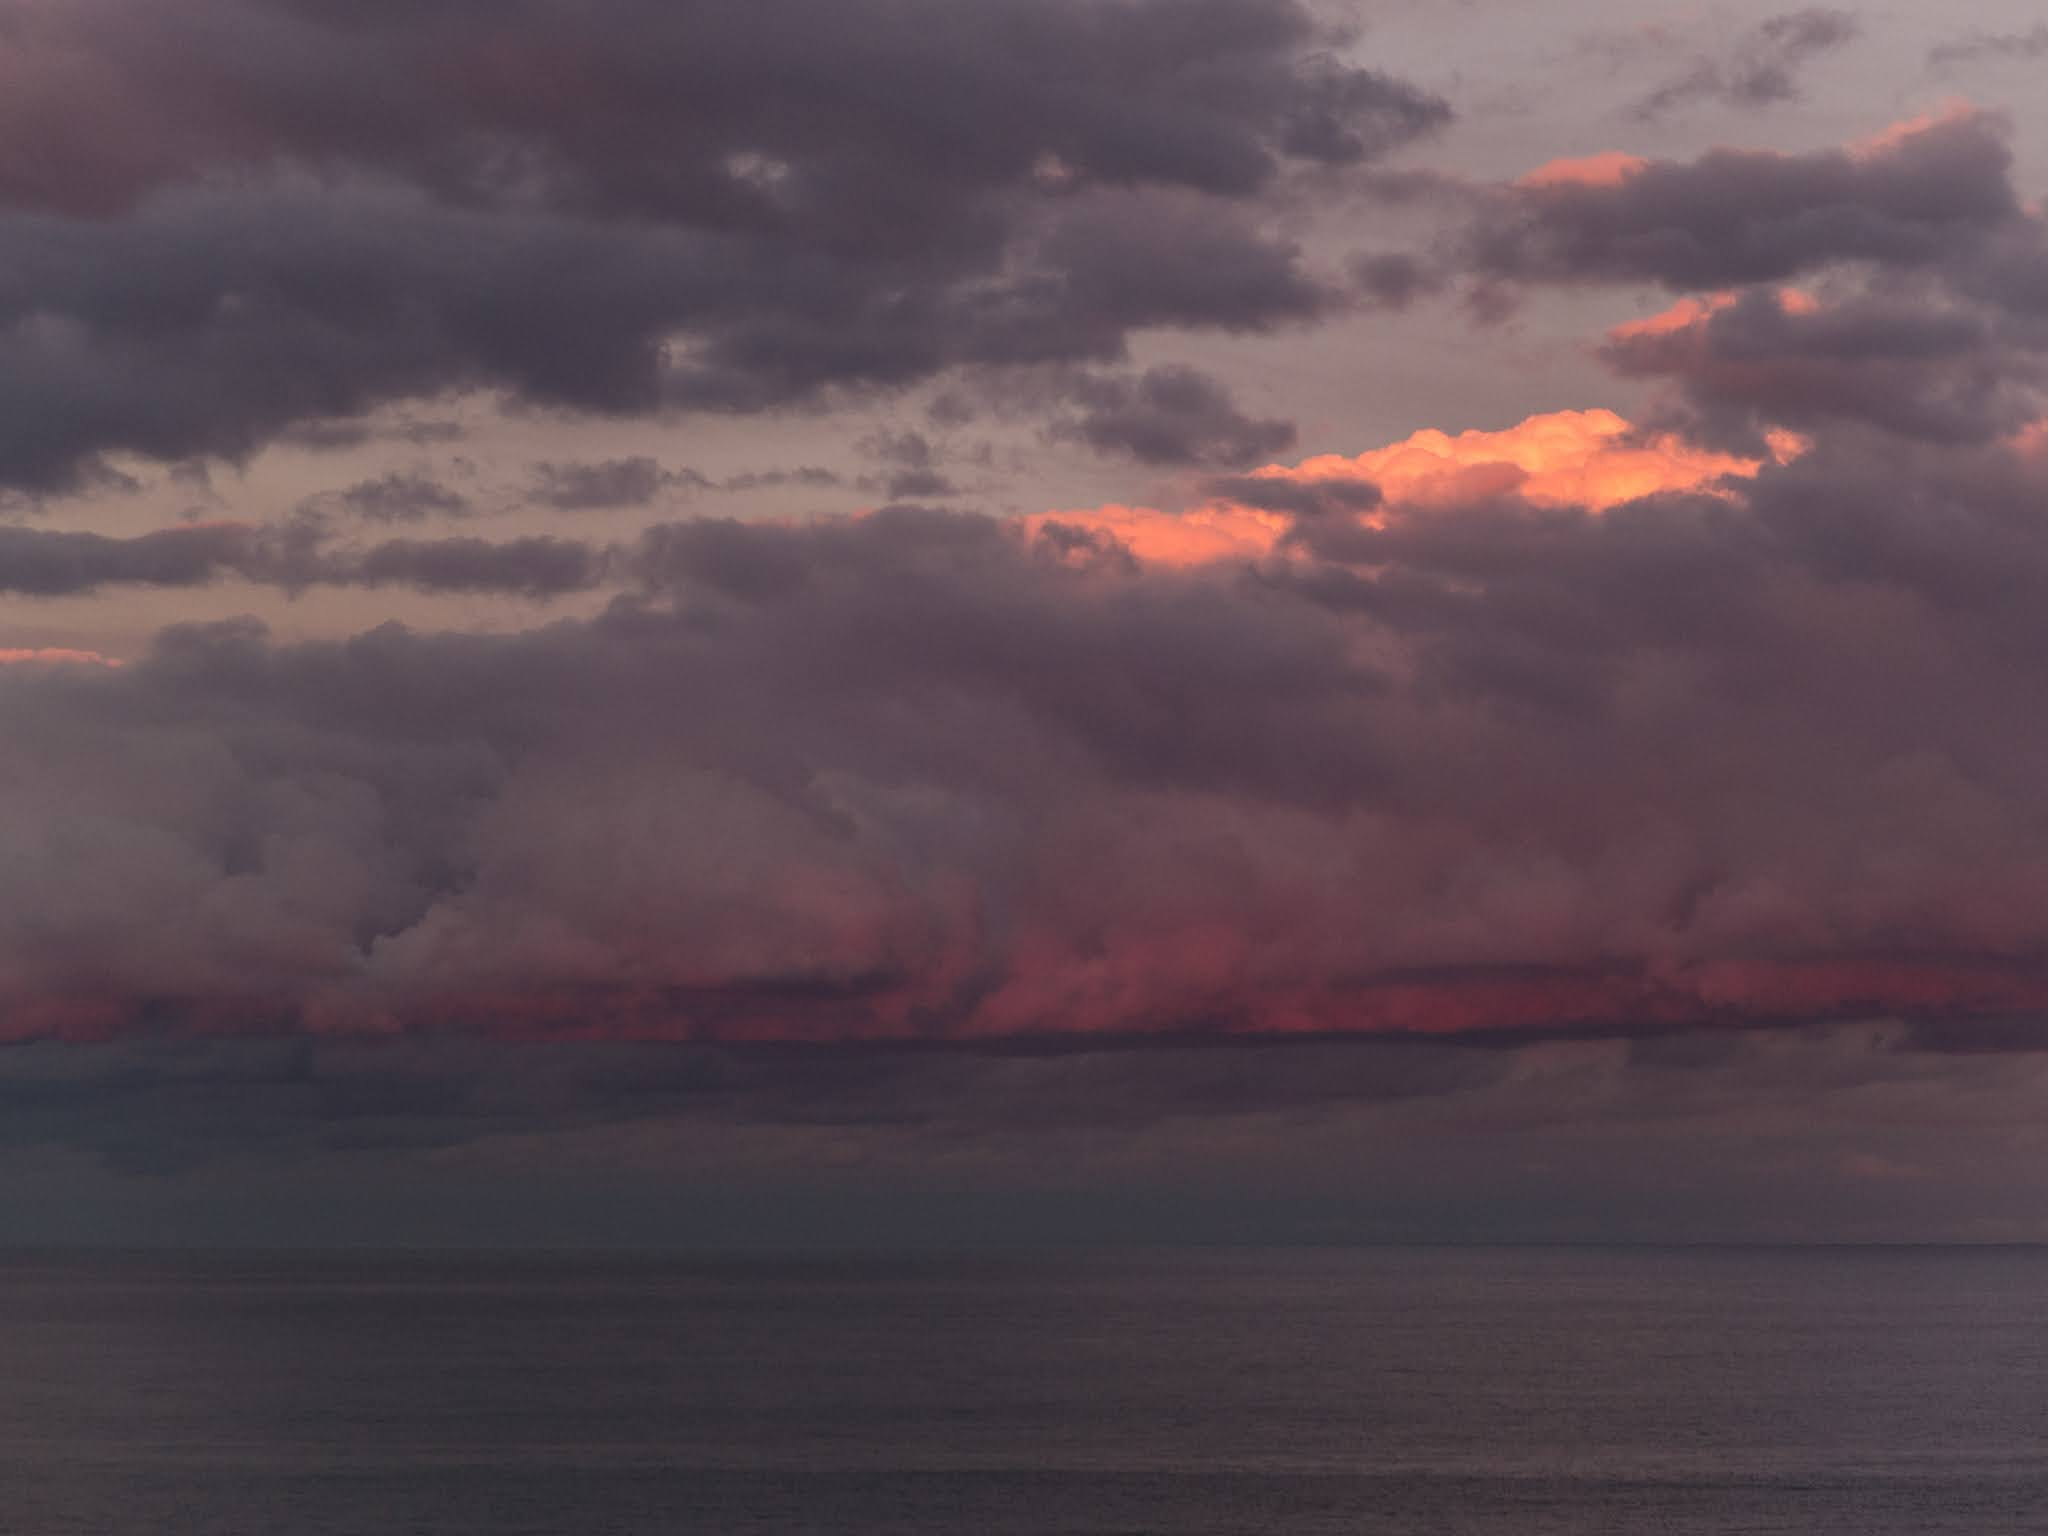 View of the Balearic Sea at sunset from the port of Barcelona.